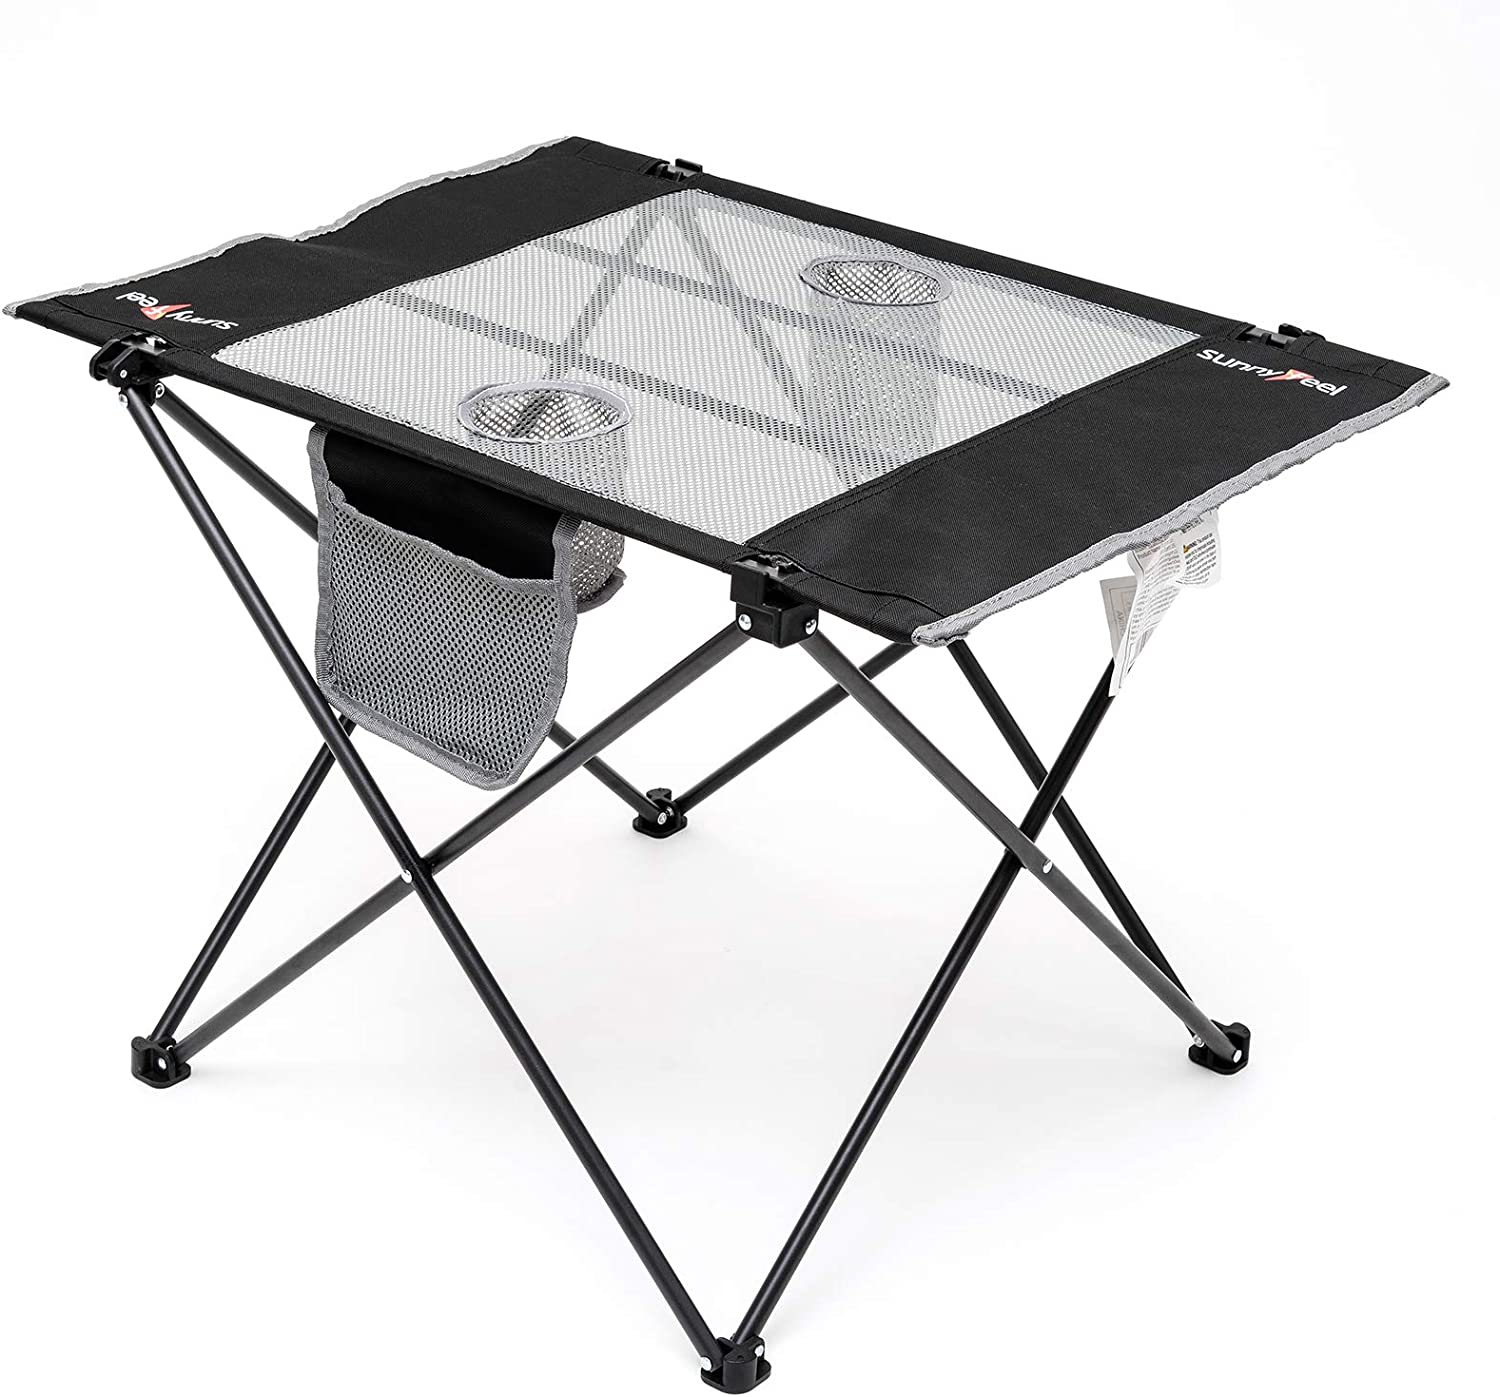 Sunnyfeel Fabric Foldable Camping Table, Compact, Lightweight, Folding Table with Cup Holder & Side Pocket for Beach/Lawn/Outdoor/Indoor/Travel/Picnic, Folding Camp Table with Carry Bag (Black)